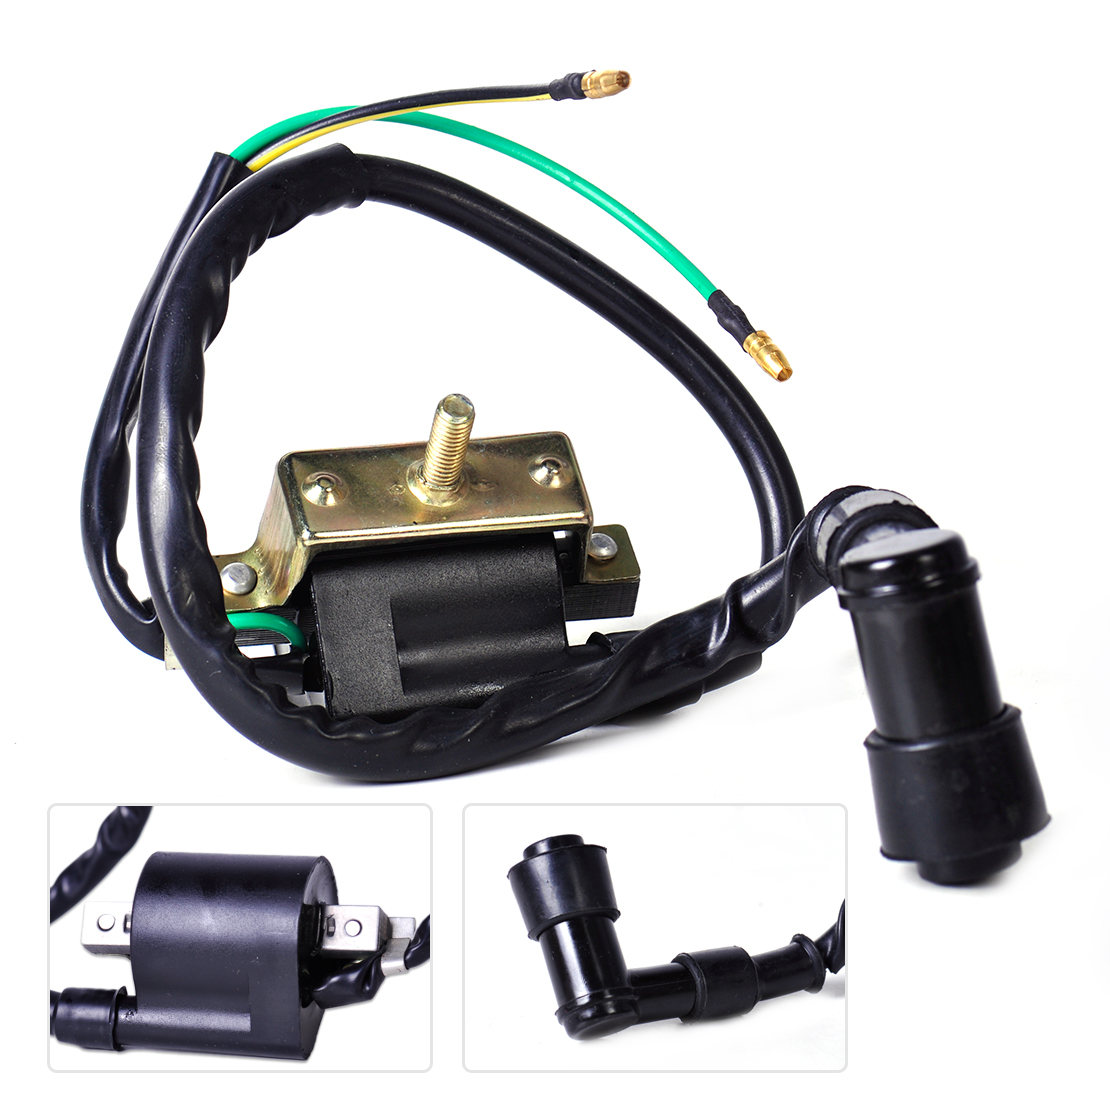 beler New 2 wire Ignition Coil Pack fit for 4 Stroke Chinese Import Pit Dirt Bike 110cc 125cc 140cc Pitbike image